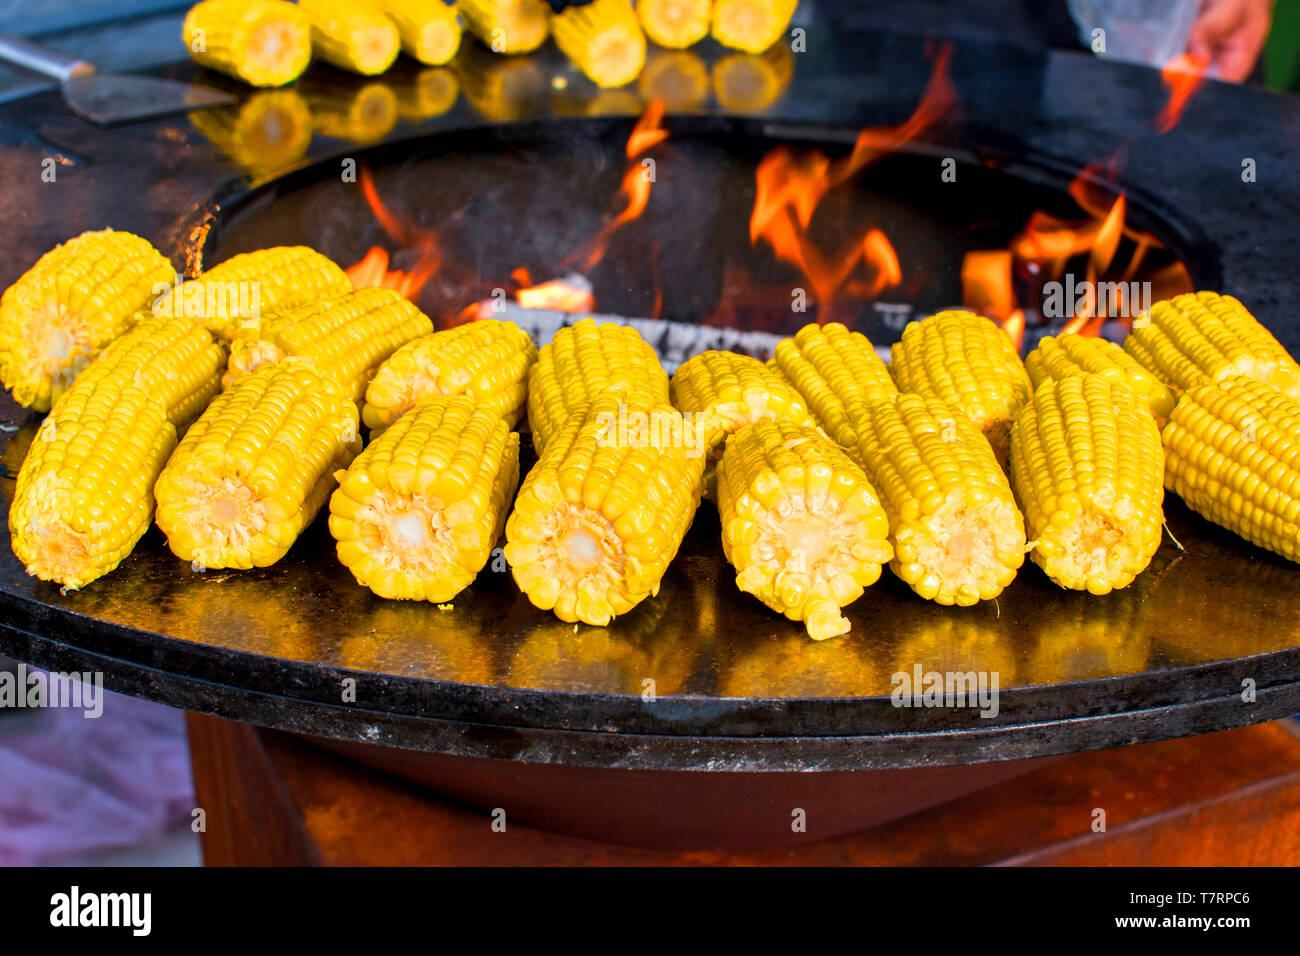 Corn on the cob on the fire ring grilled with open fire deliciously crispy - Stock Image